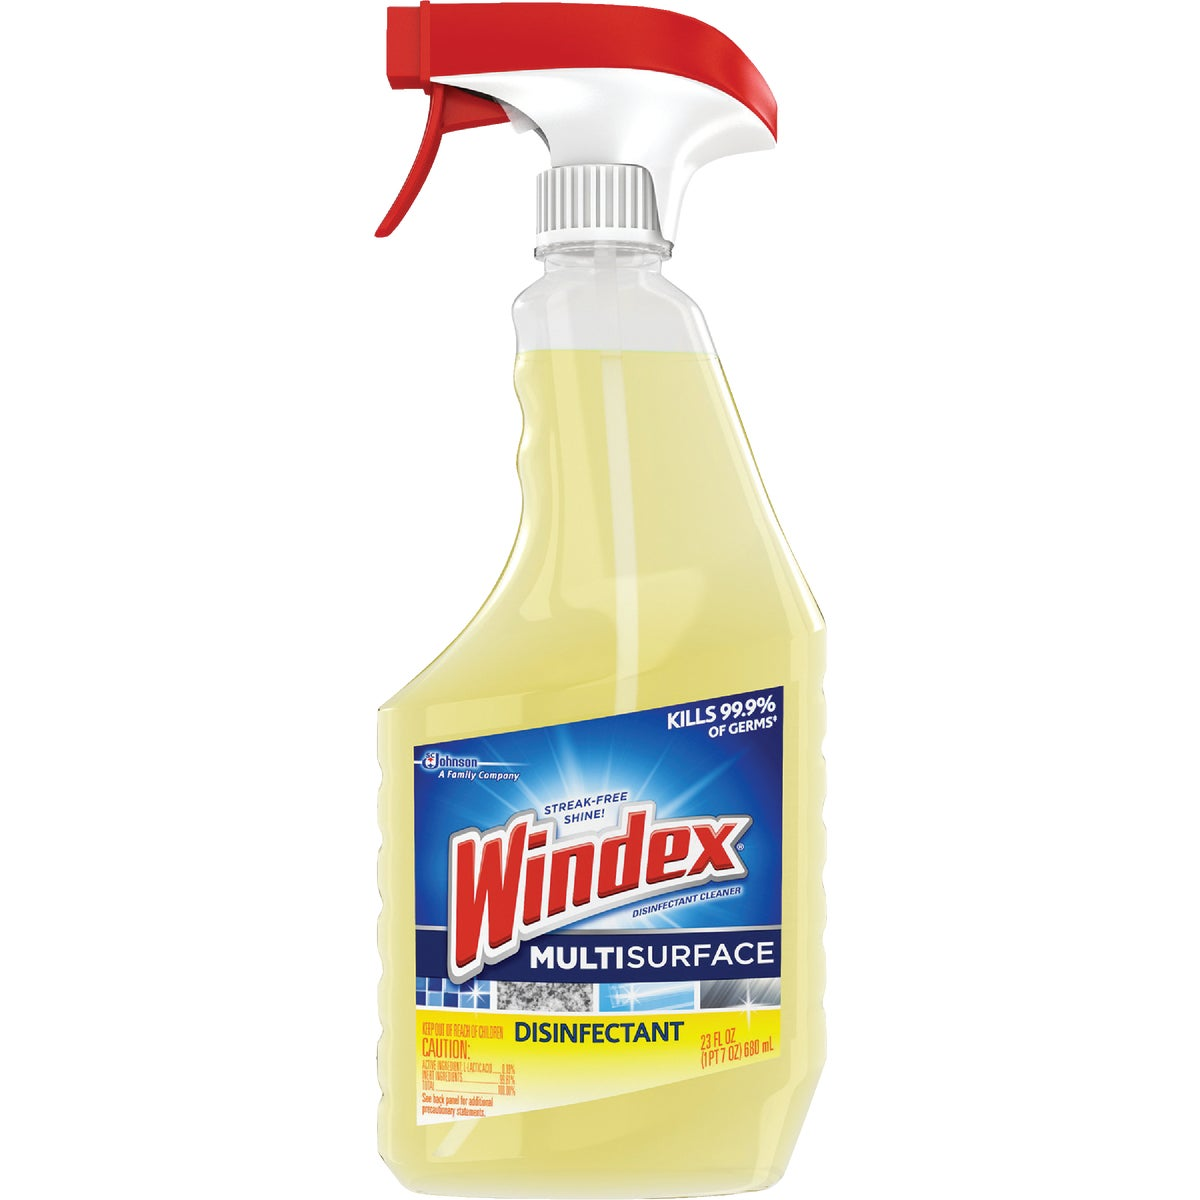 Windex Disinfectant MultiSurface Glass Cleaner, 70251